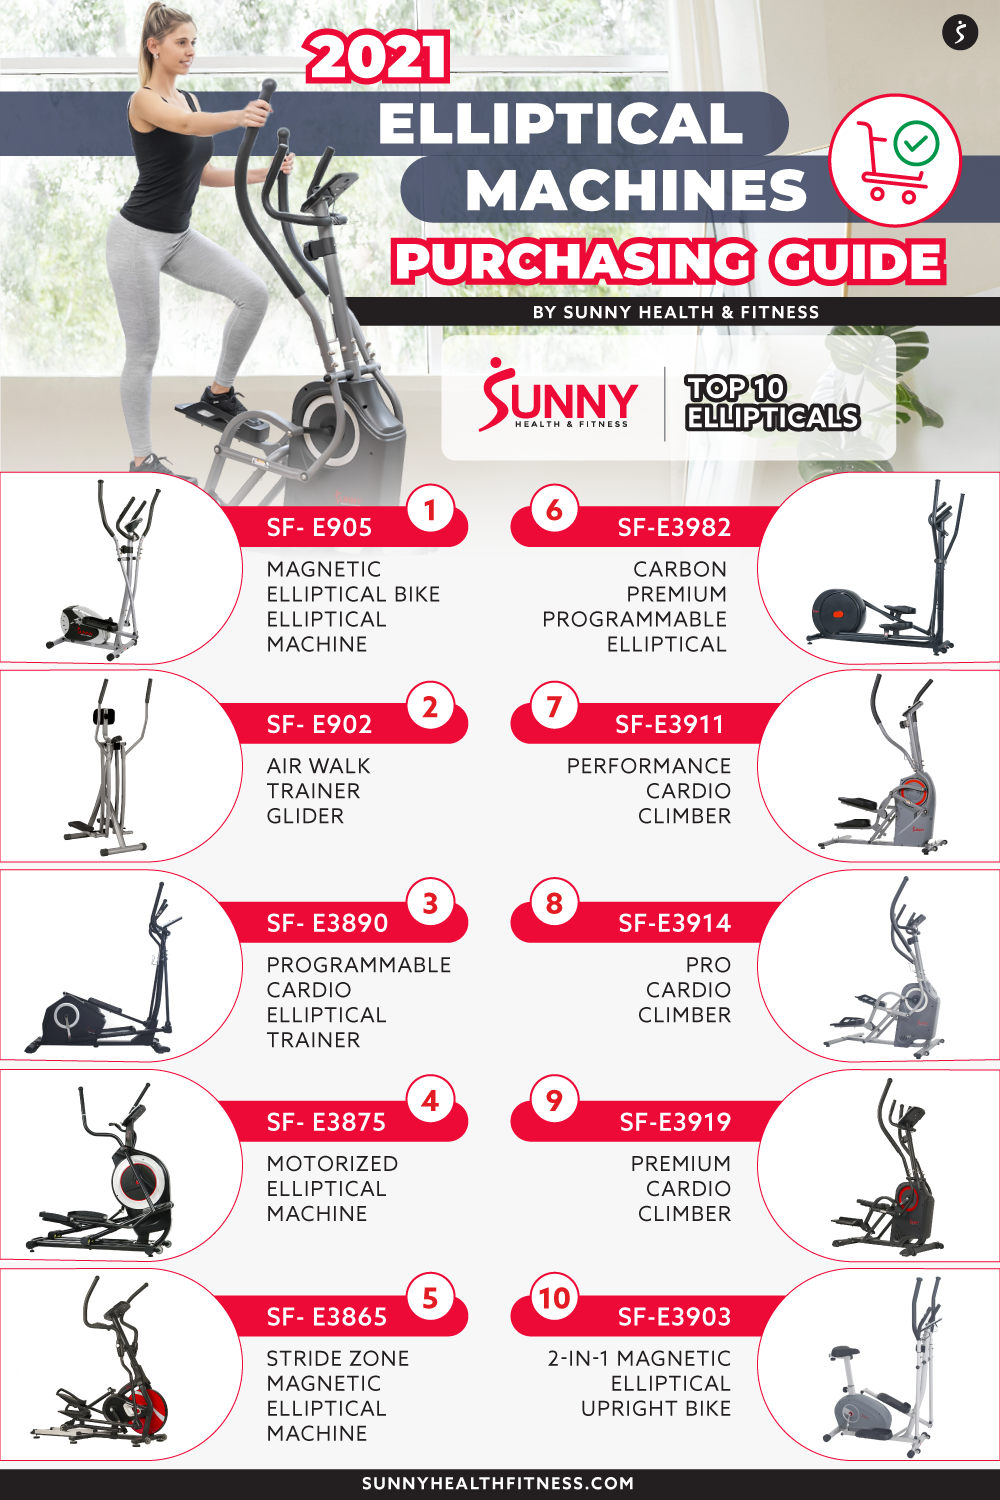 Find the Top 10 Ellipticals in 2021 by Sunny Health & Fitness